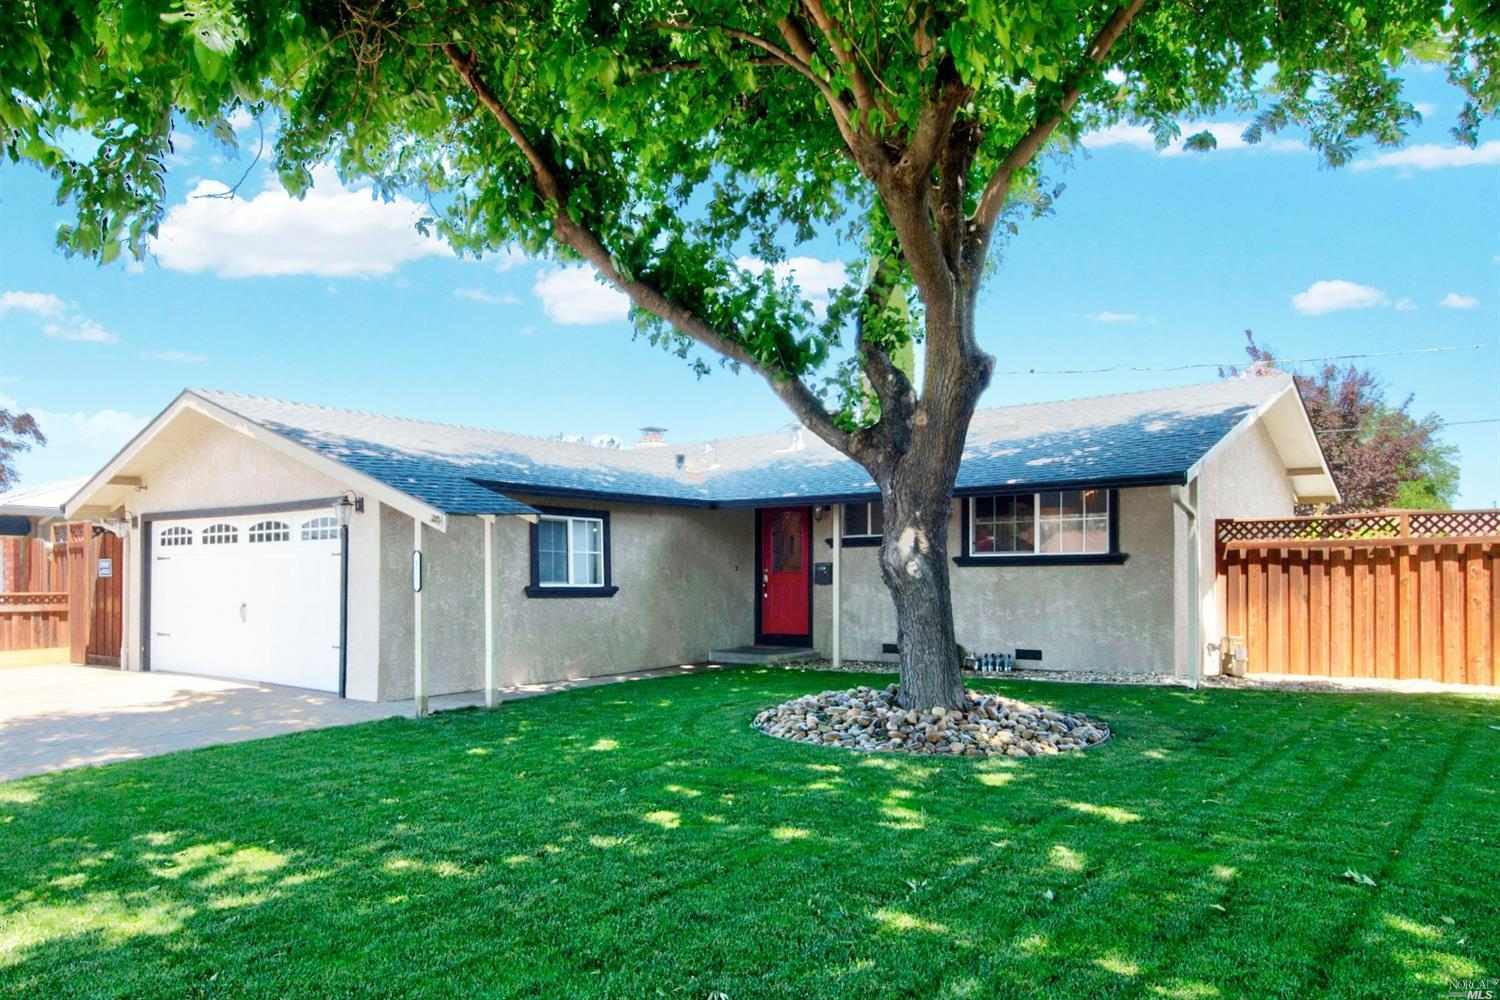 112 Tahoe Dr., Vacaville*